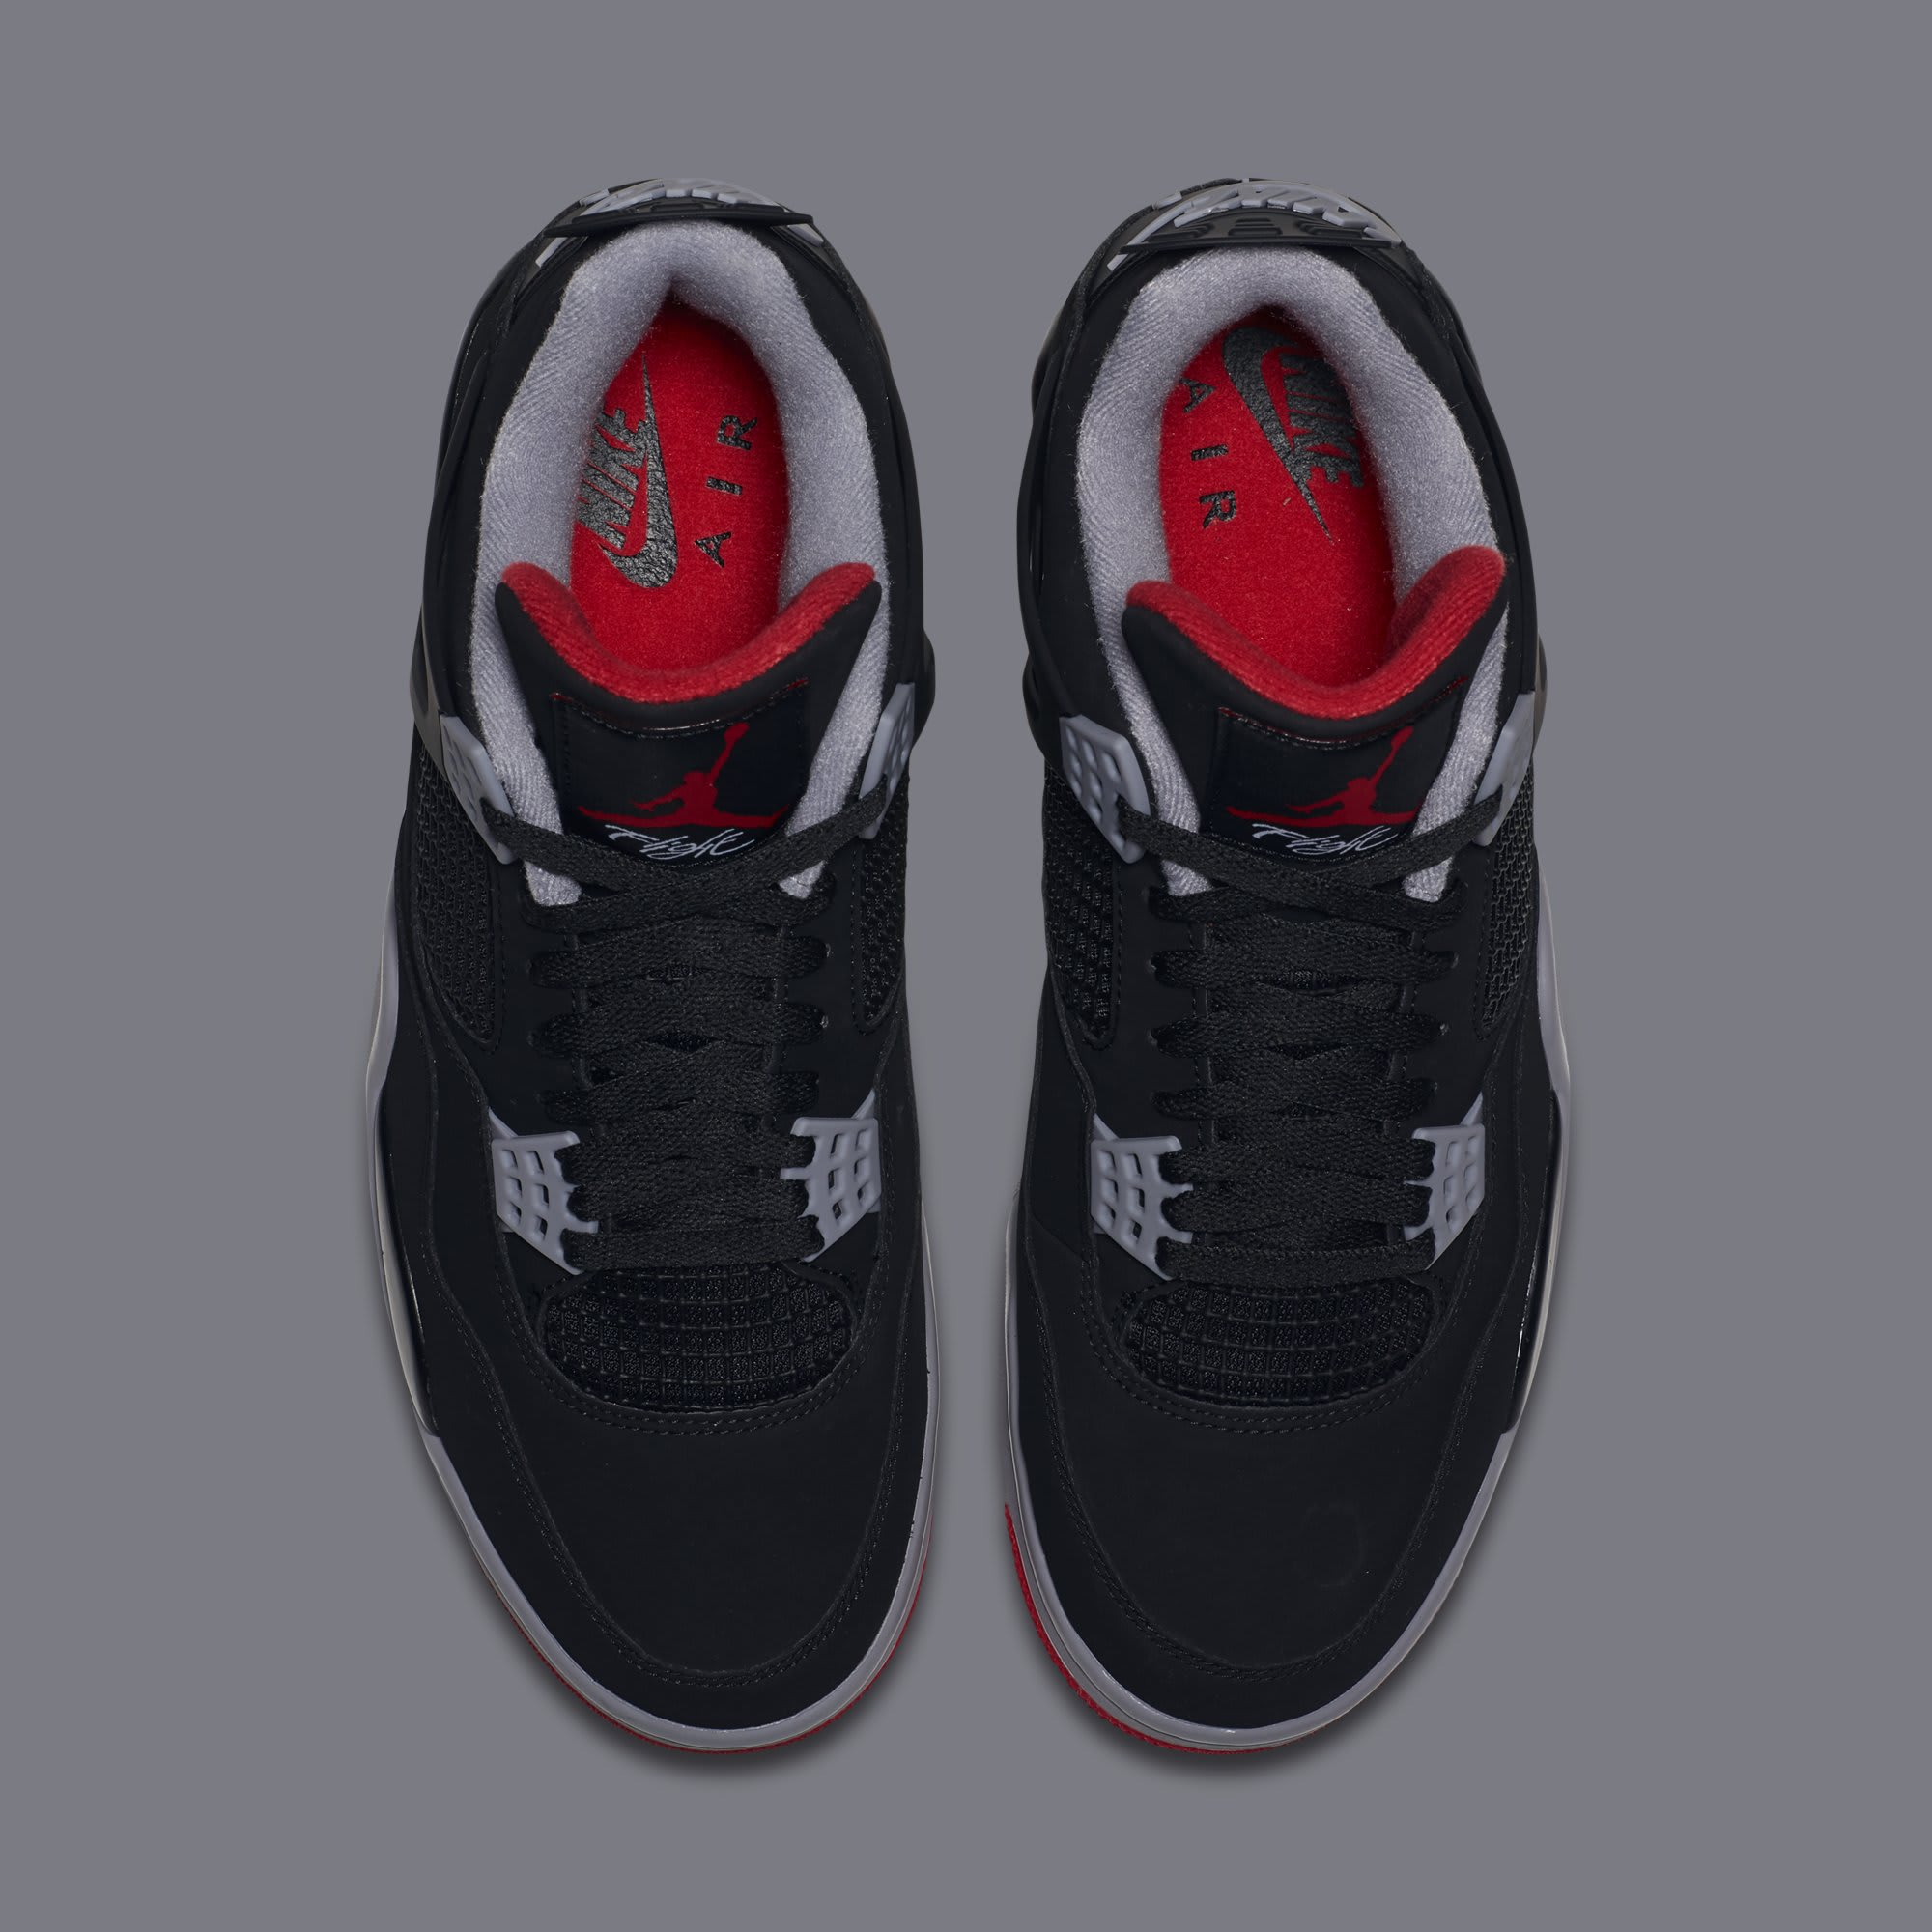 Air Jordan 4 'Bred' 308497-060 (Top)